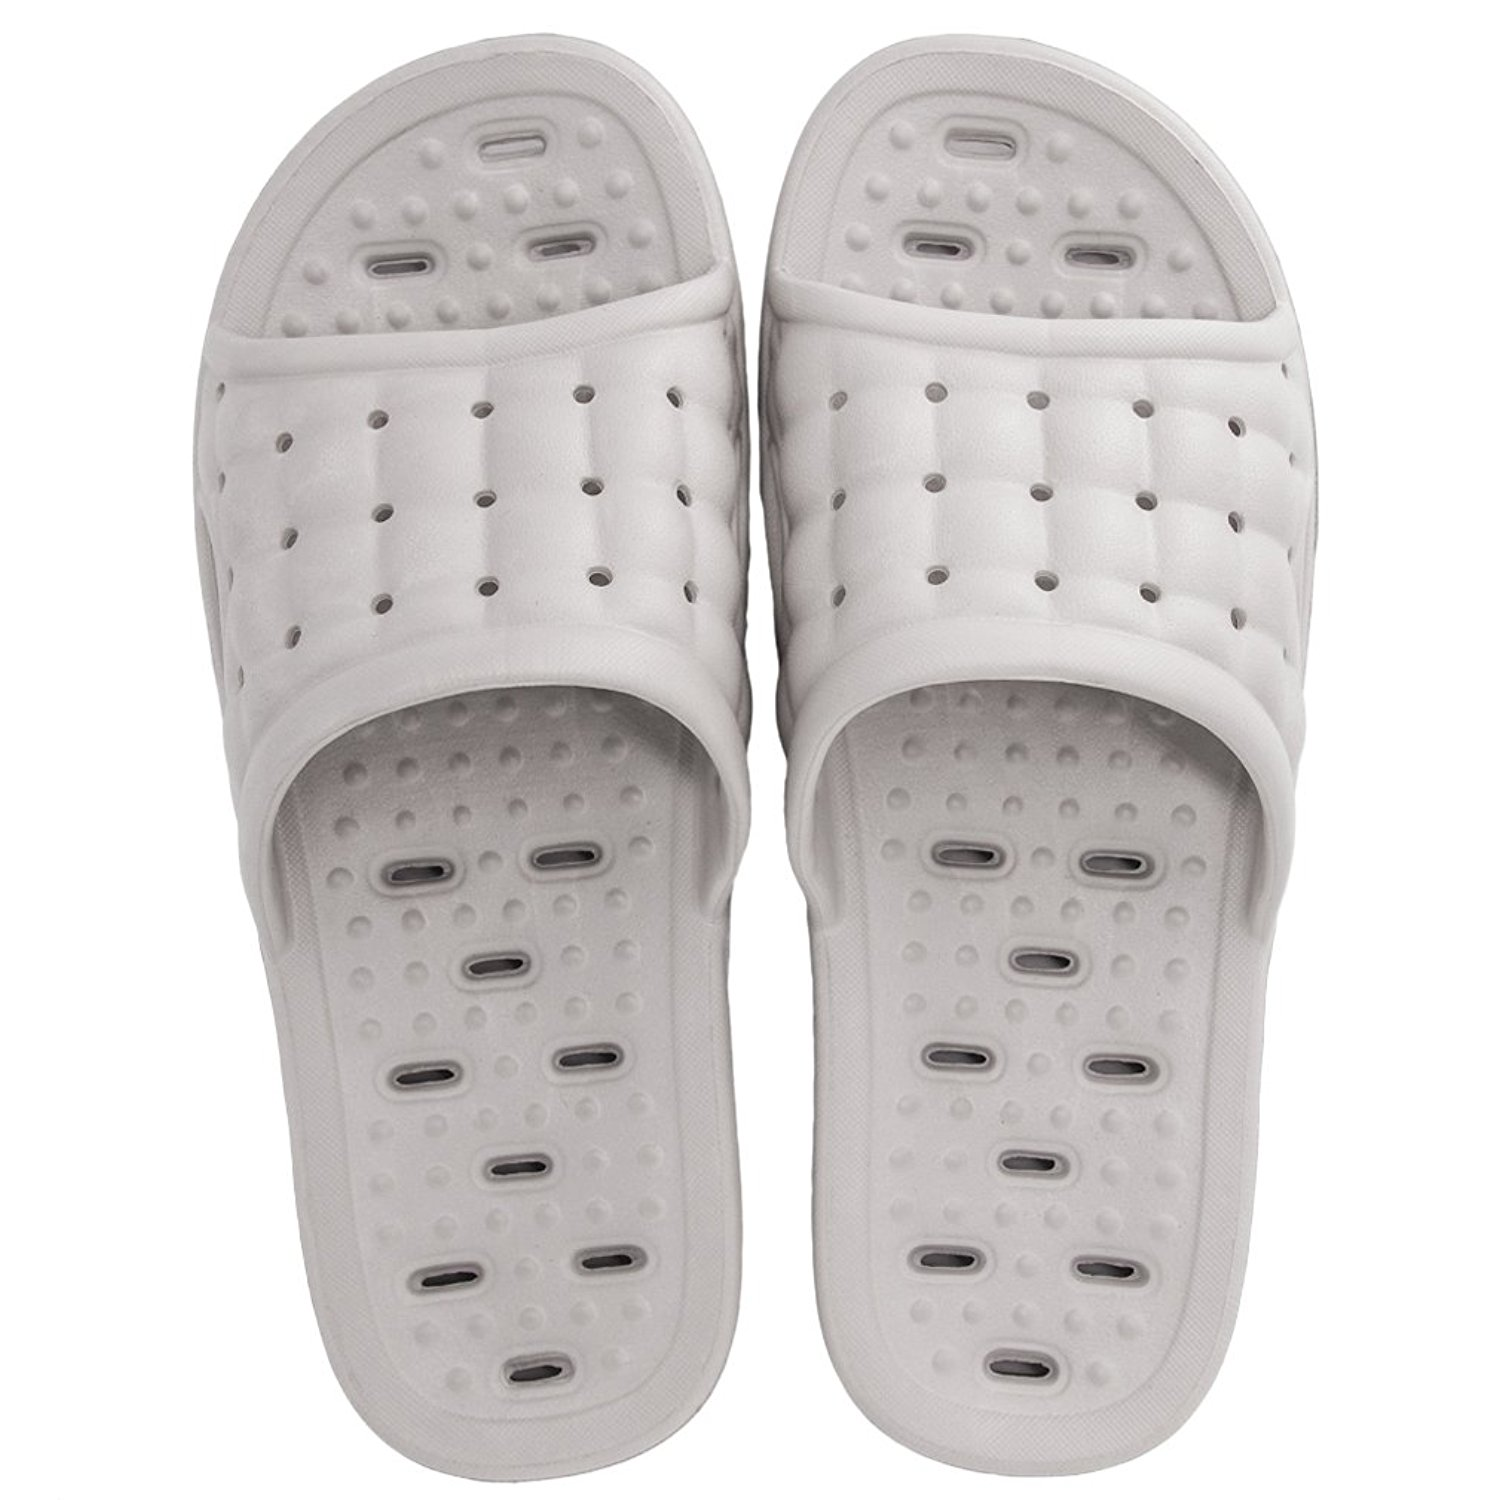 Anti-Slip Bath Slippers Quicky-drying Soft Hollow Slippers Causal Home Floor Shower Slippers(Men Grey) - USA Size: 9-10